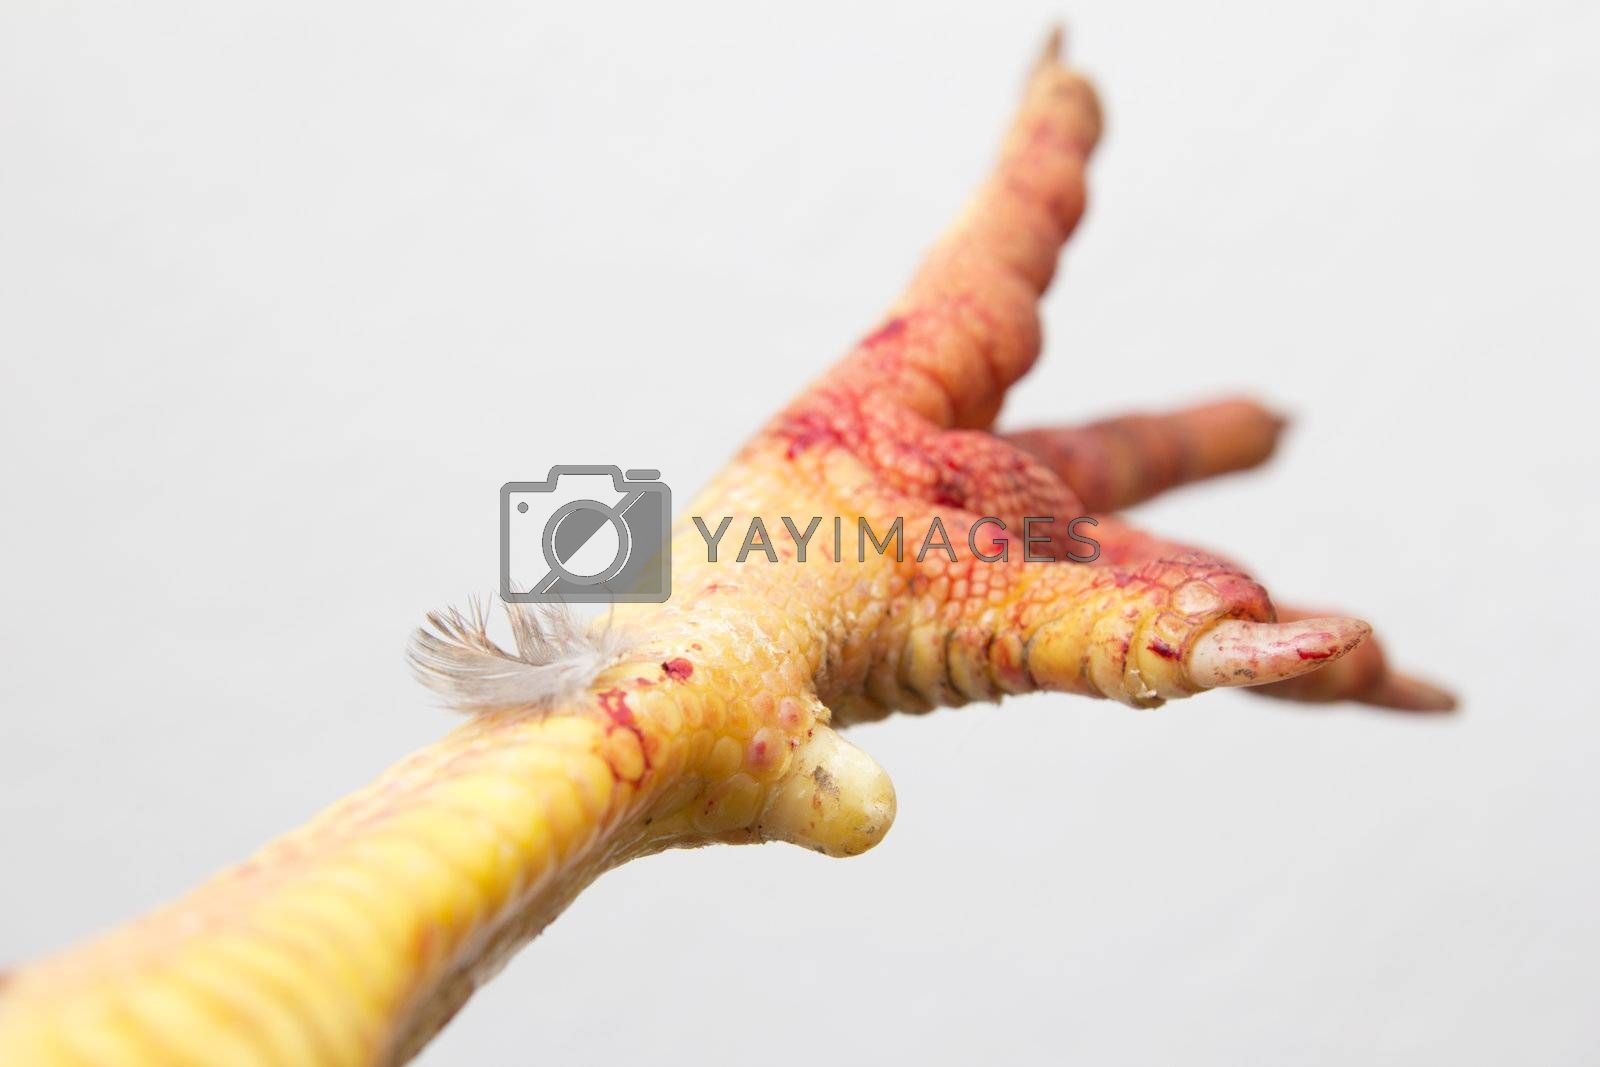 foot cock on white background